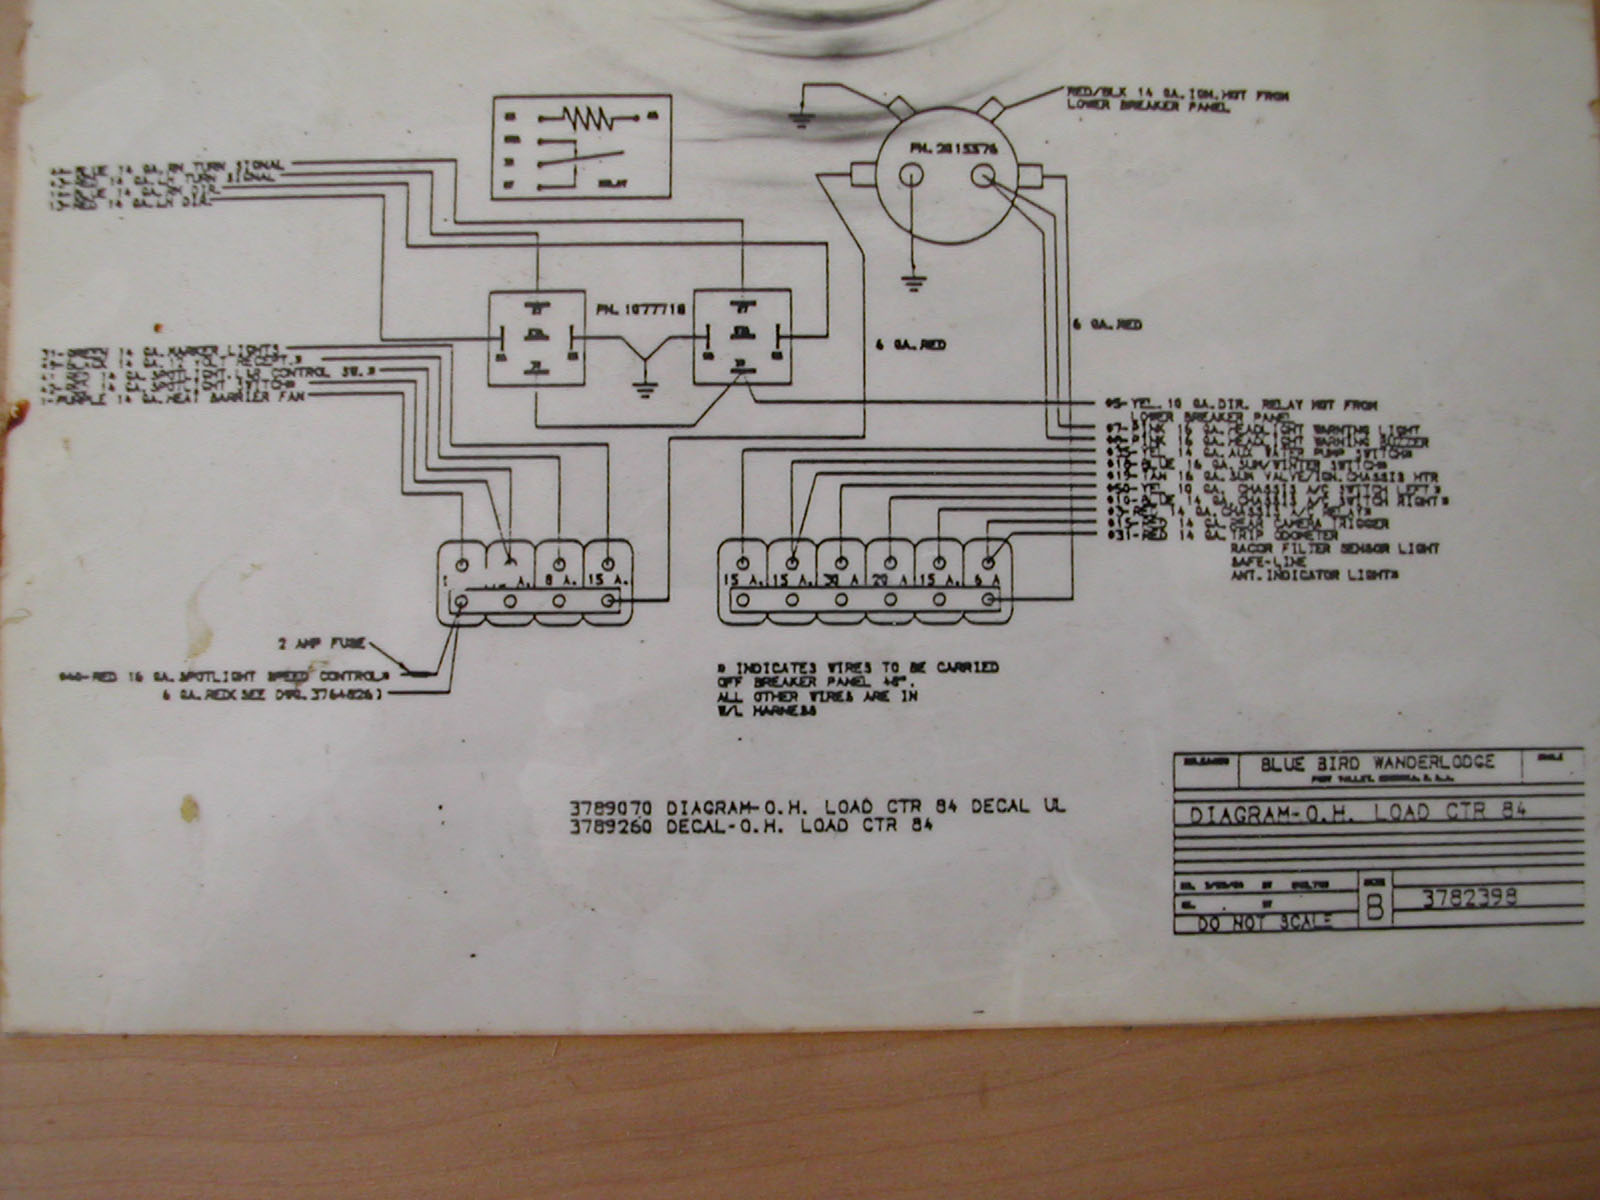 1984 Overhead Load Center www wanderlodgeownersgroup com downloads detroit ecm wiring diagram at readyjetset.co